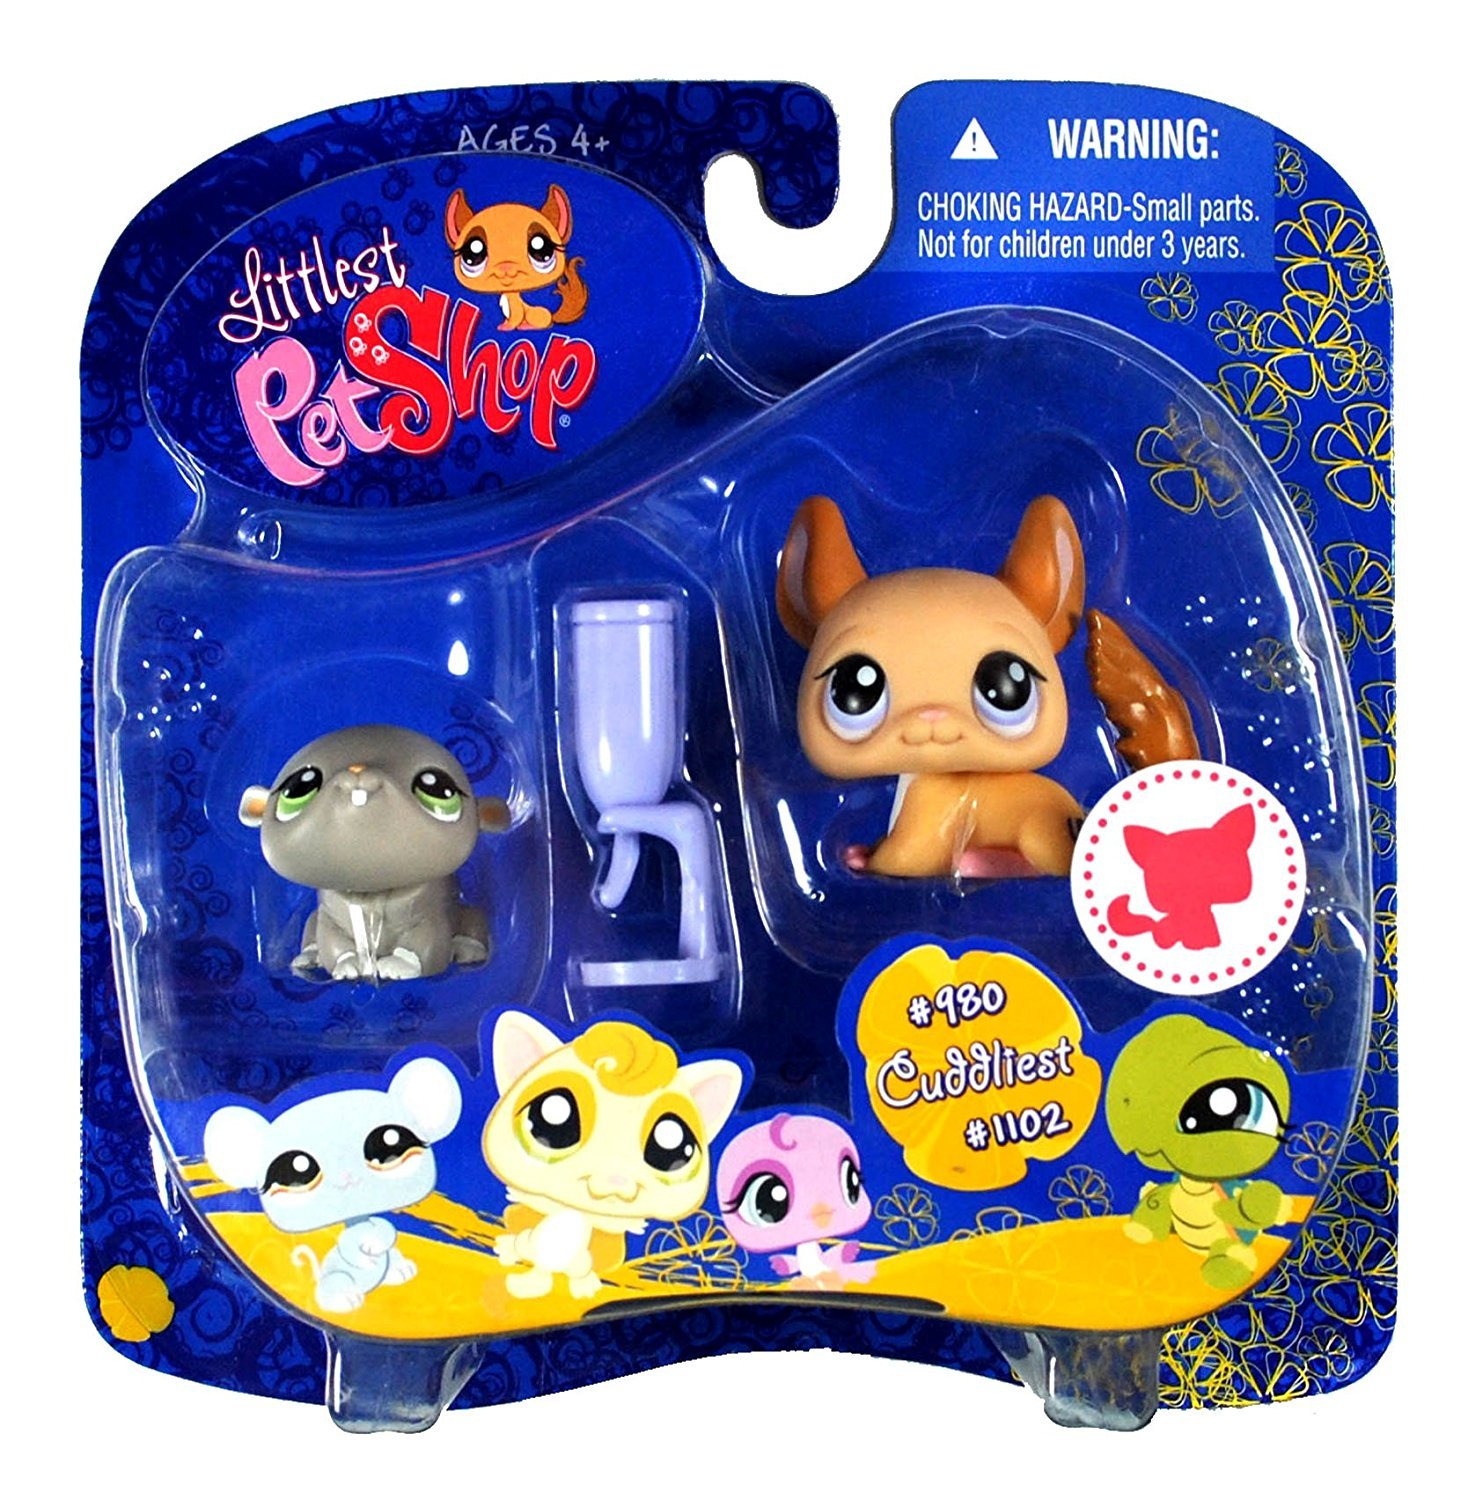 Littlest Pet Shop Shop Cuddliest Pet Pairs Portable Collectible Pairs Gift B074V97MHC Set - Hamster (#980) and Chinchilla (#1102) Plus Water Bottle [並行輸入品] B074V97MHC, 藍住町:34fe14ae --- arvoreazul.com.br